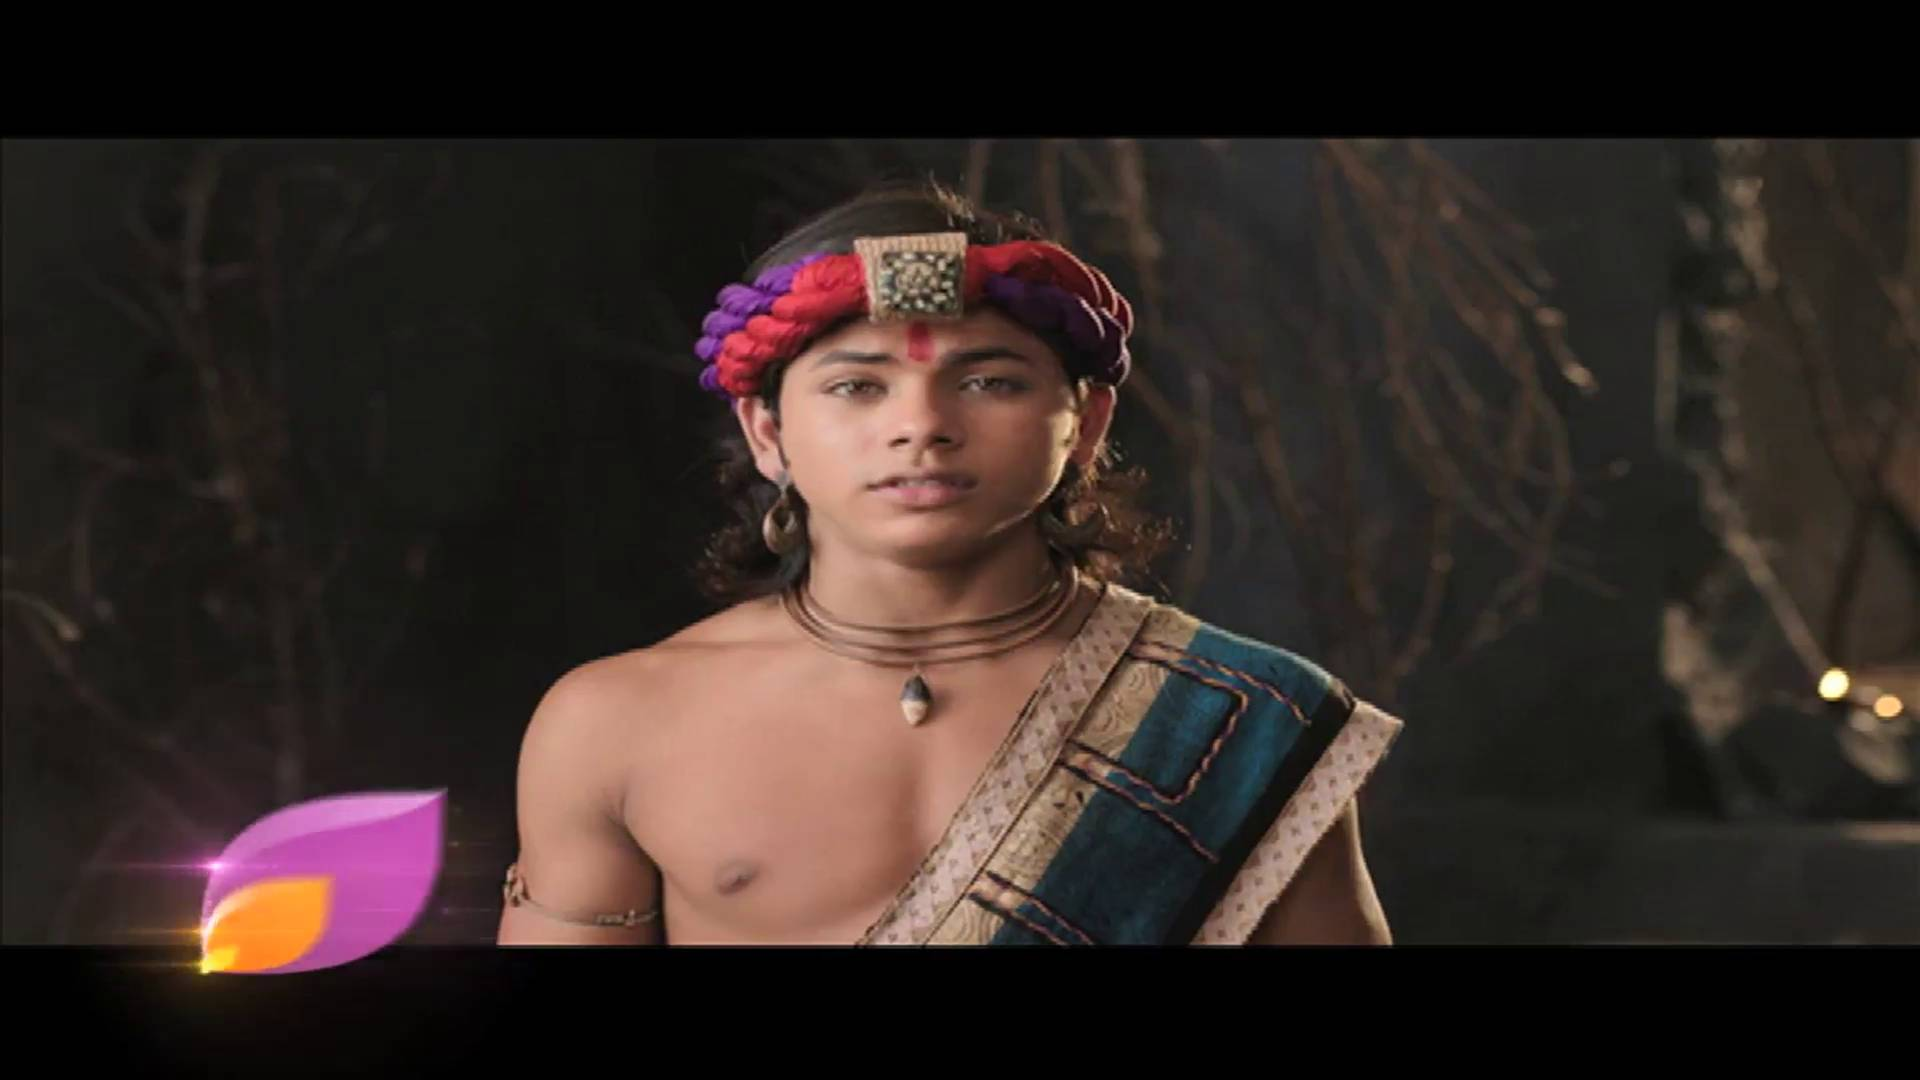 Promo: Ashoka learns the truth about his mother